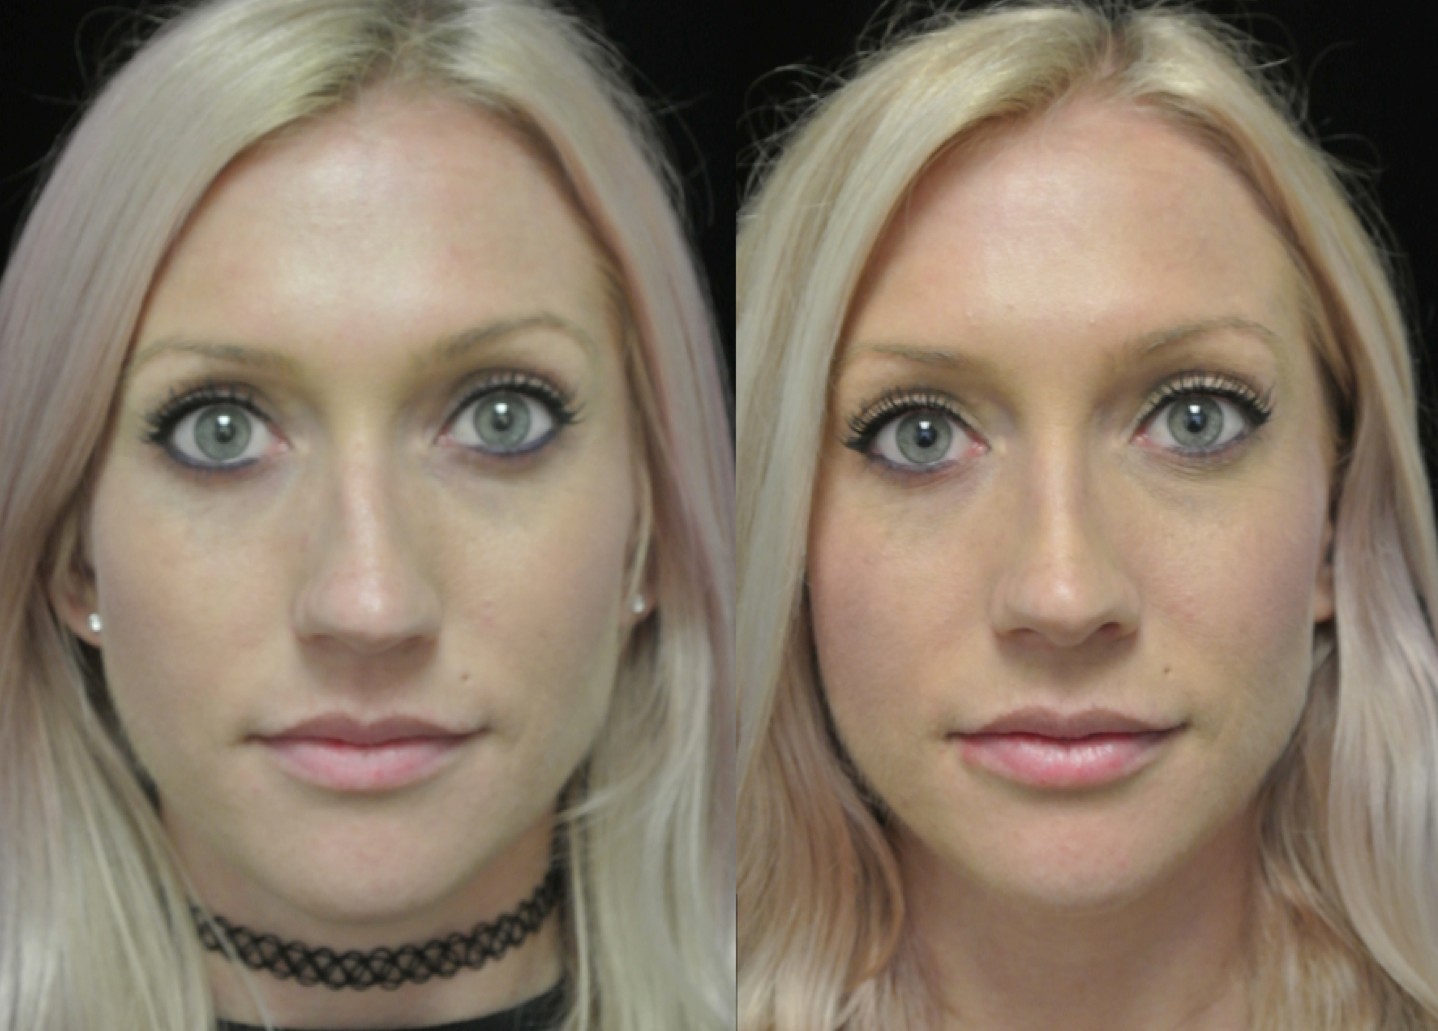 before and after photo of a female patient who underwent a lip enhancement